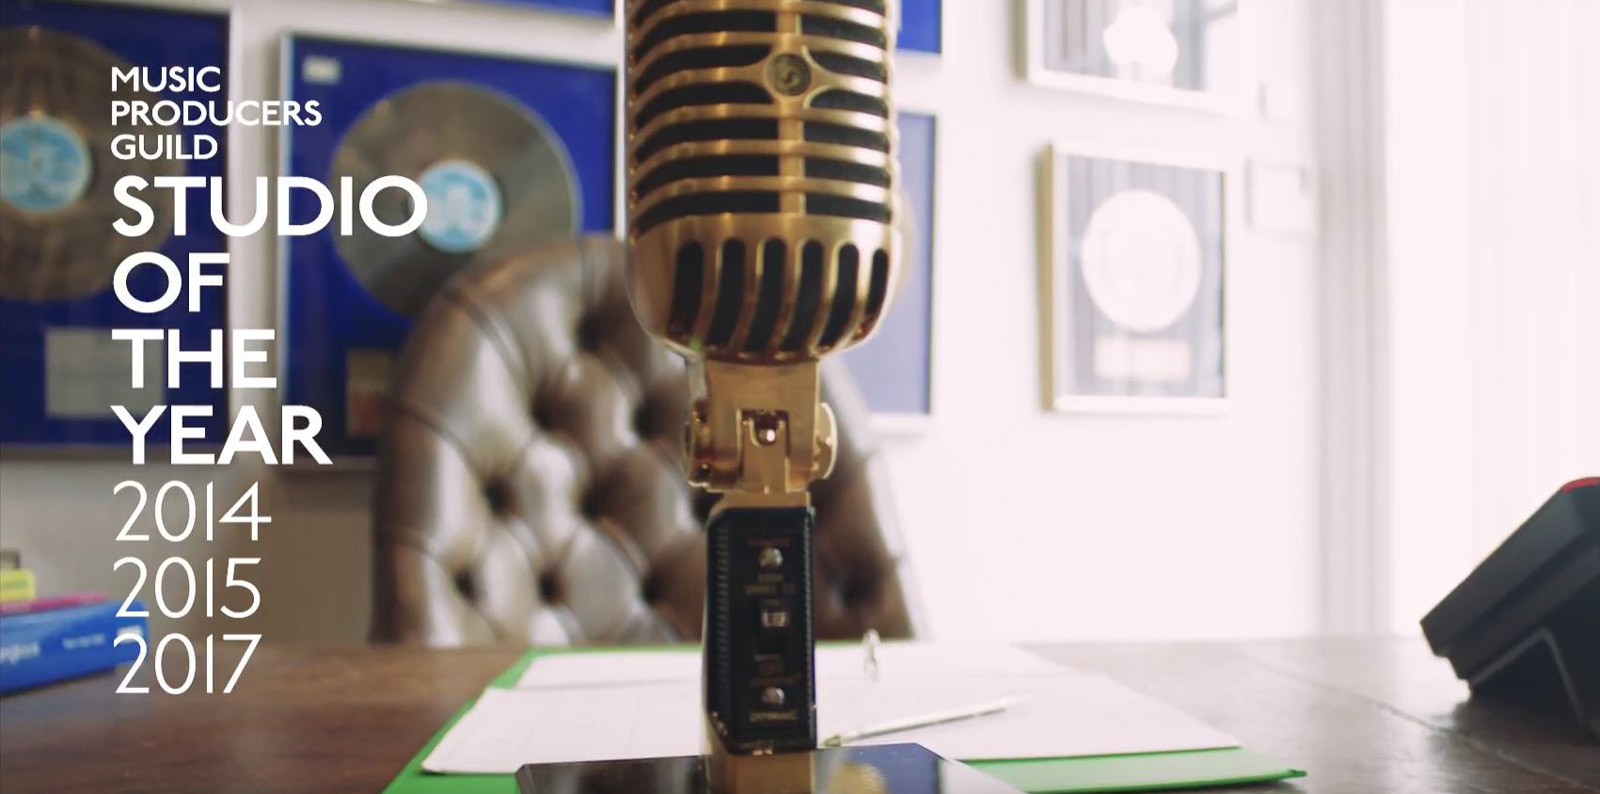 Studio Talks London – RAK Studios